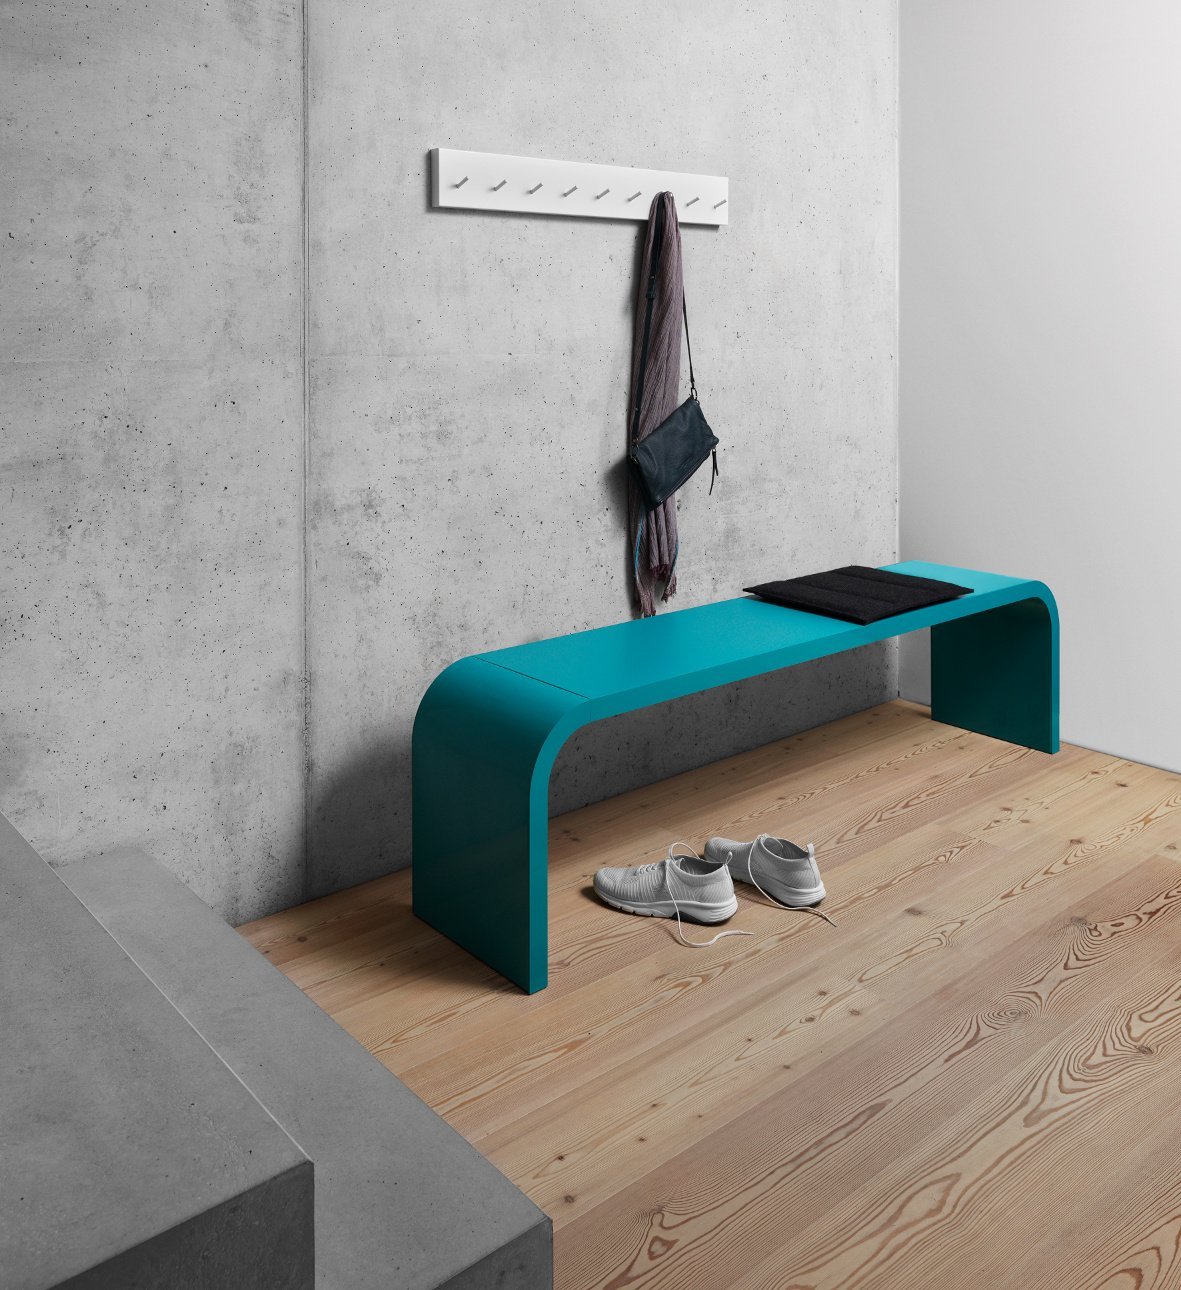 Highline Bench from Muller